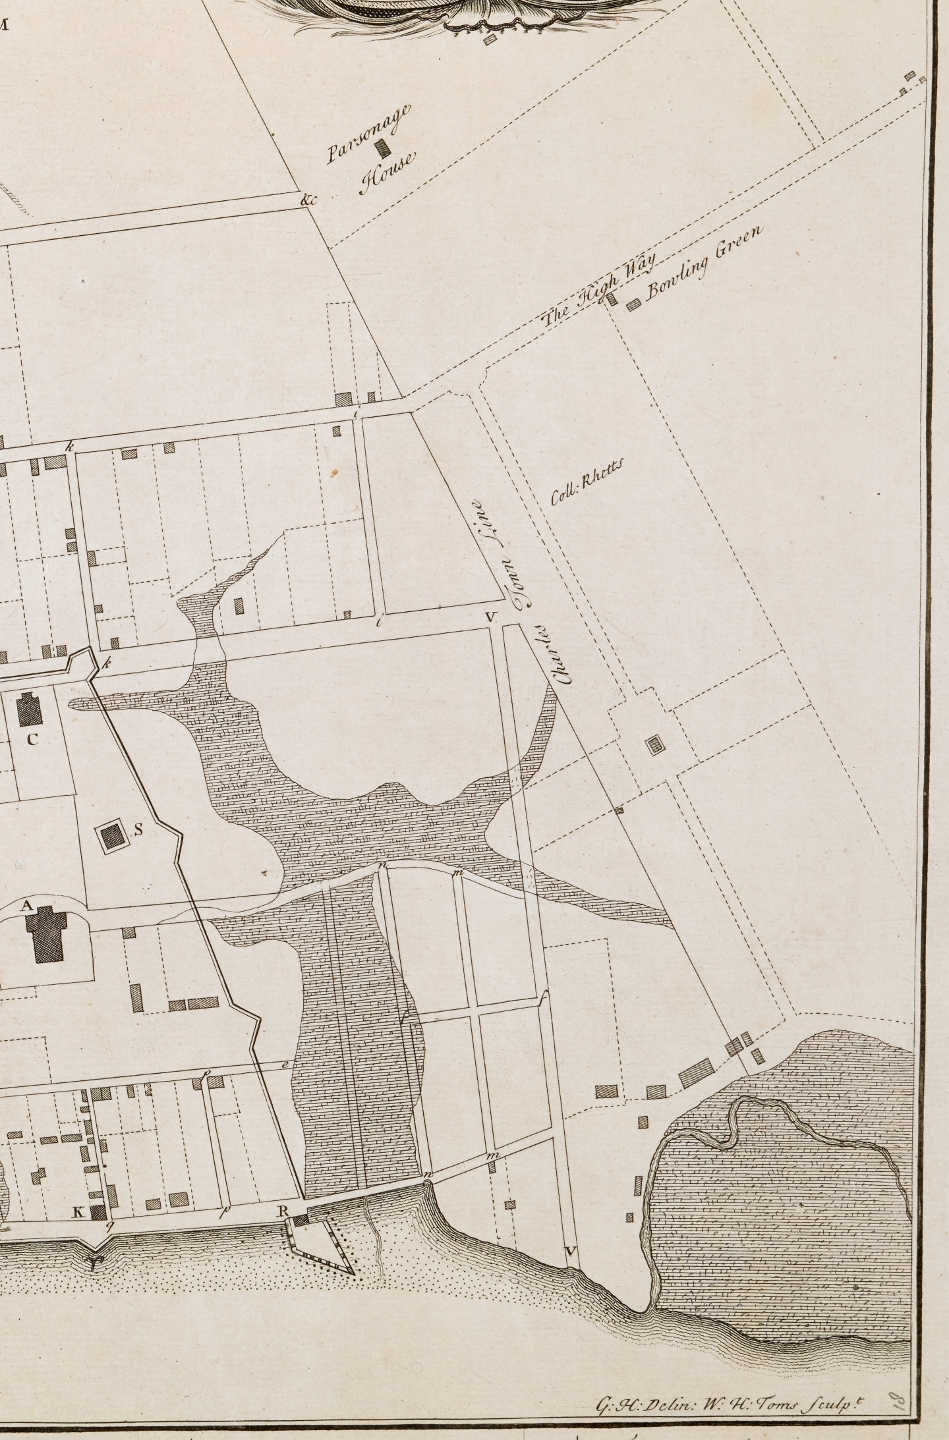 Bishop robertss 1739 map titled the ichnography of charles town at high water provides the first clear depiction of the line separating the town from